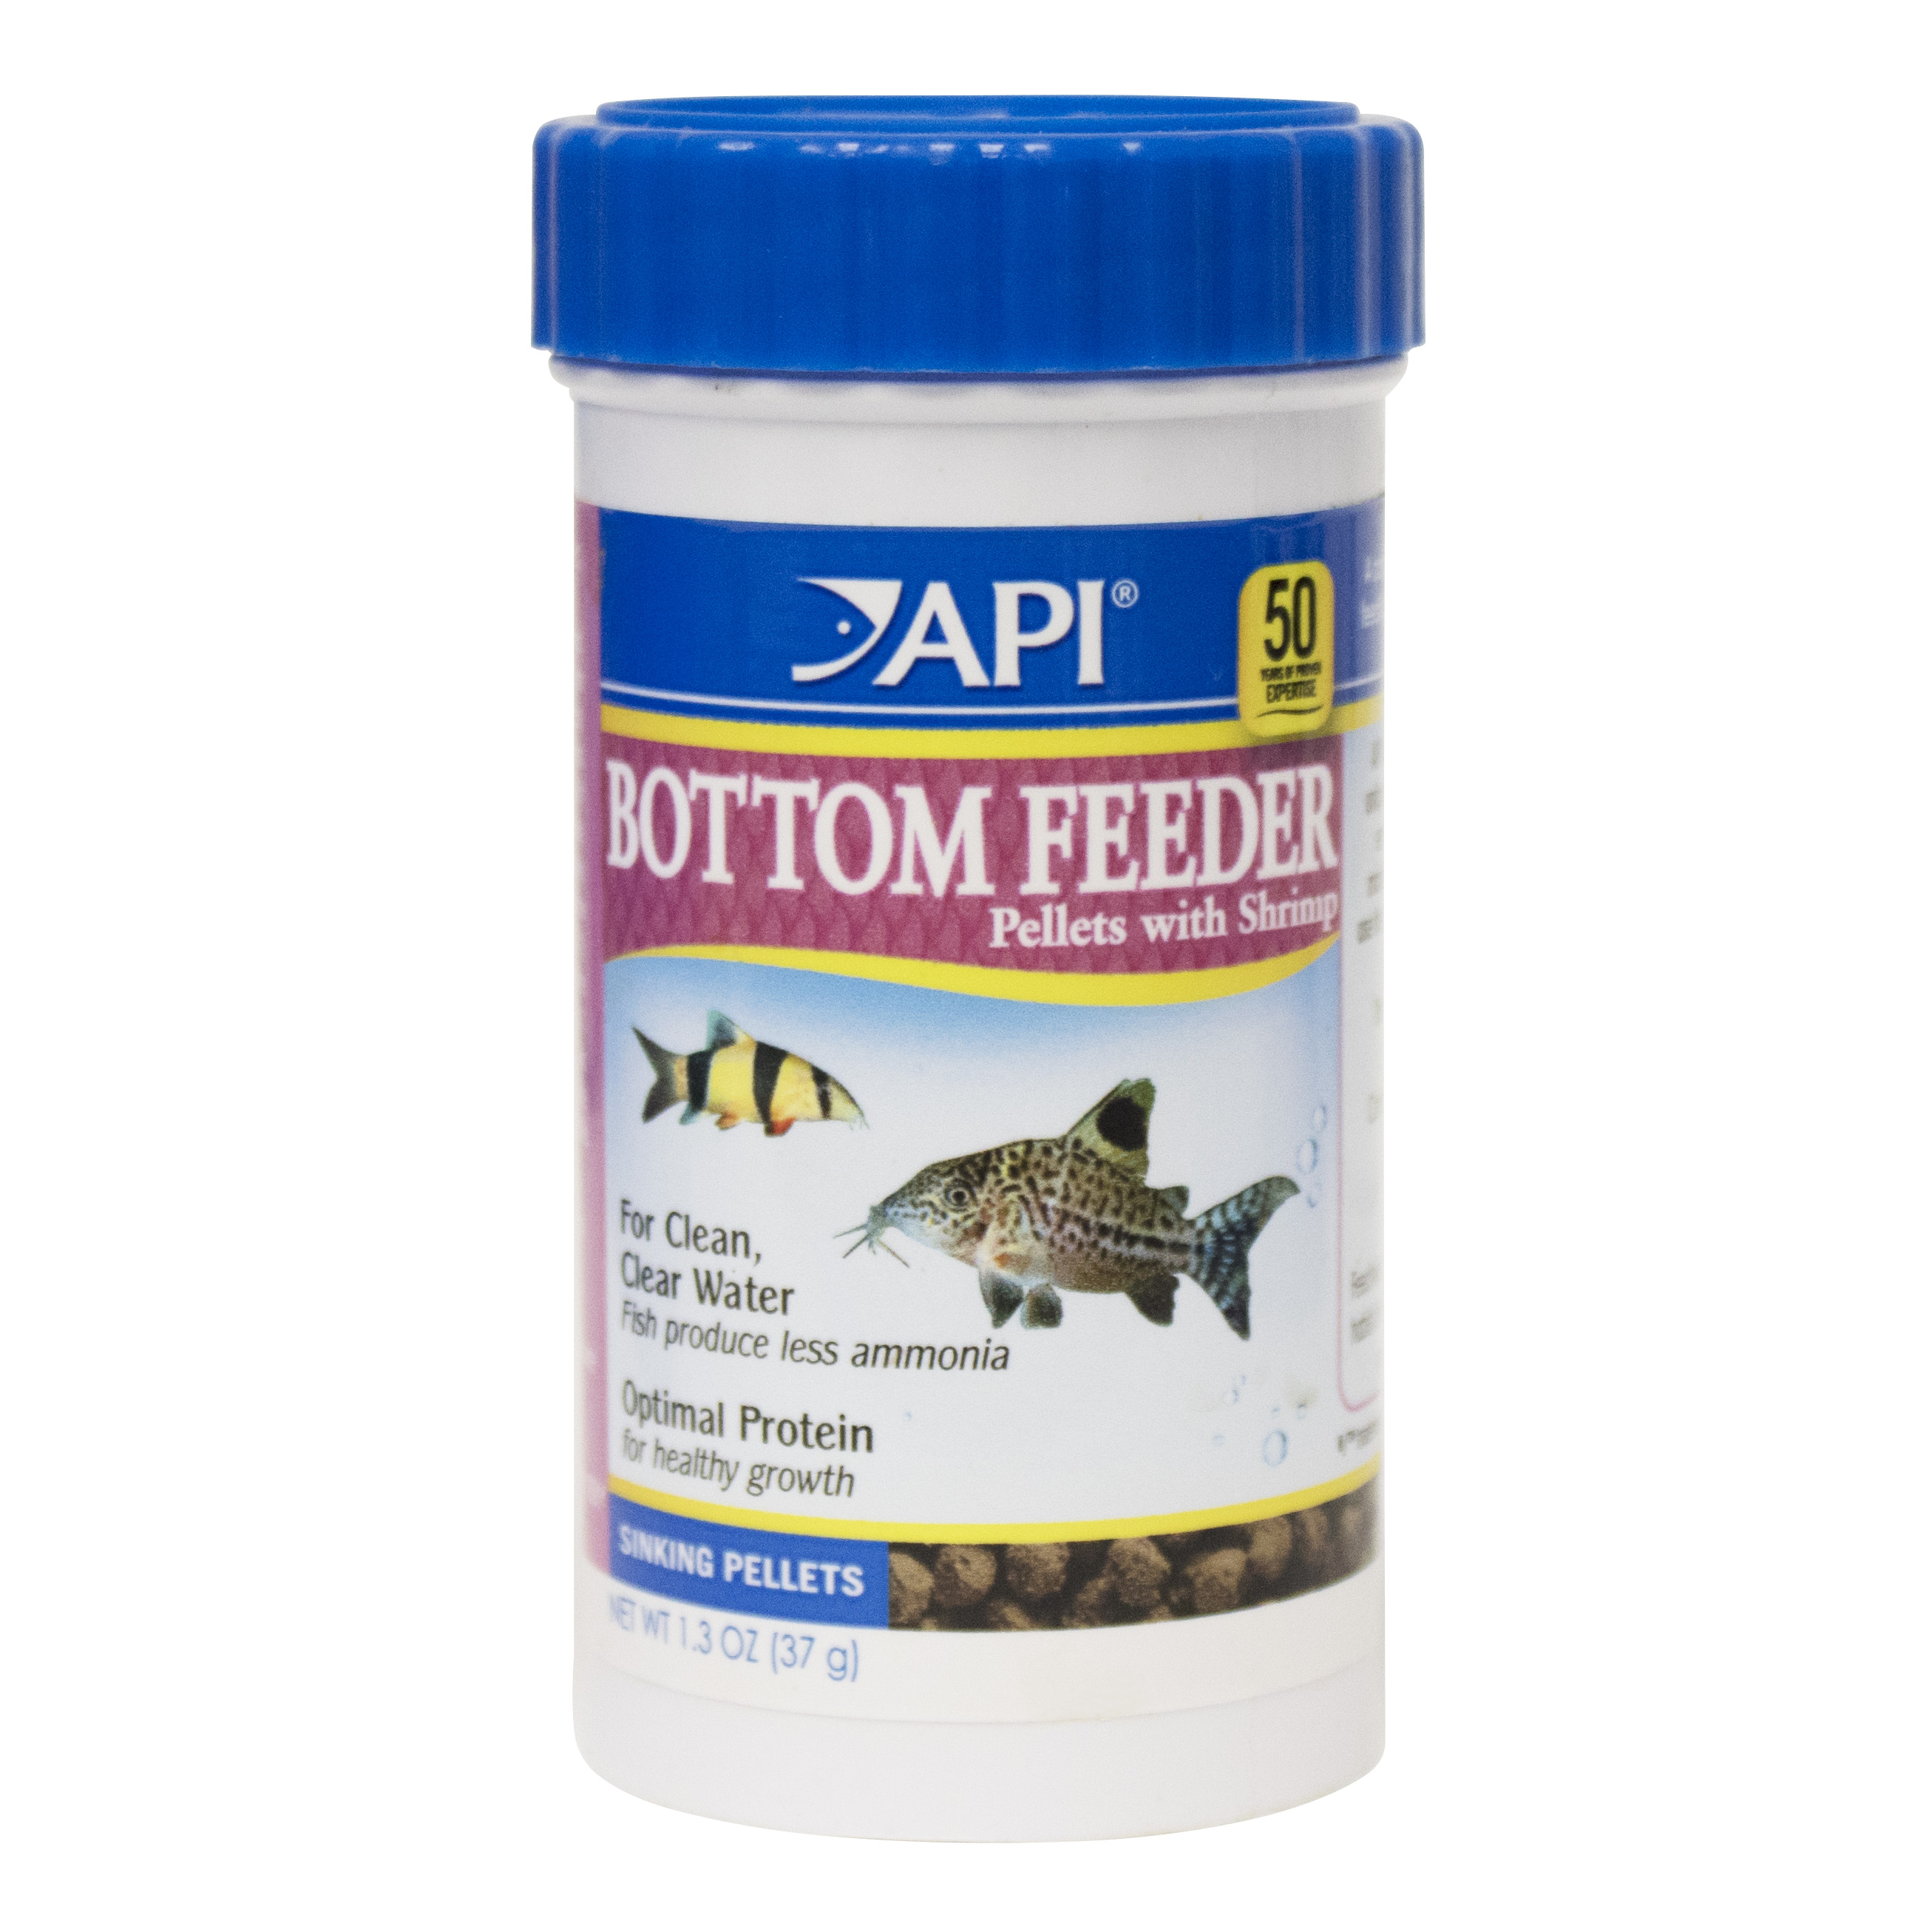 BOTTOM FEEDER SHRIMP PELLETS